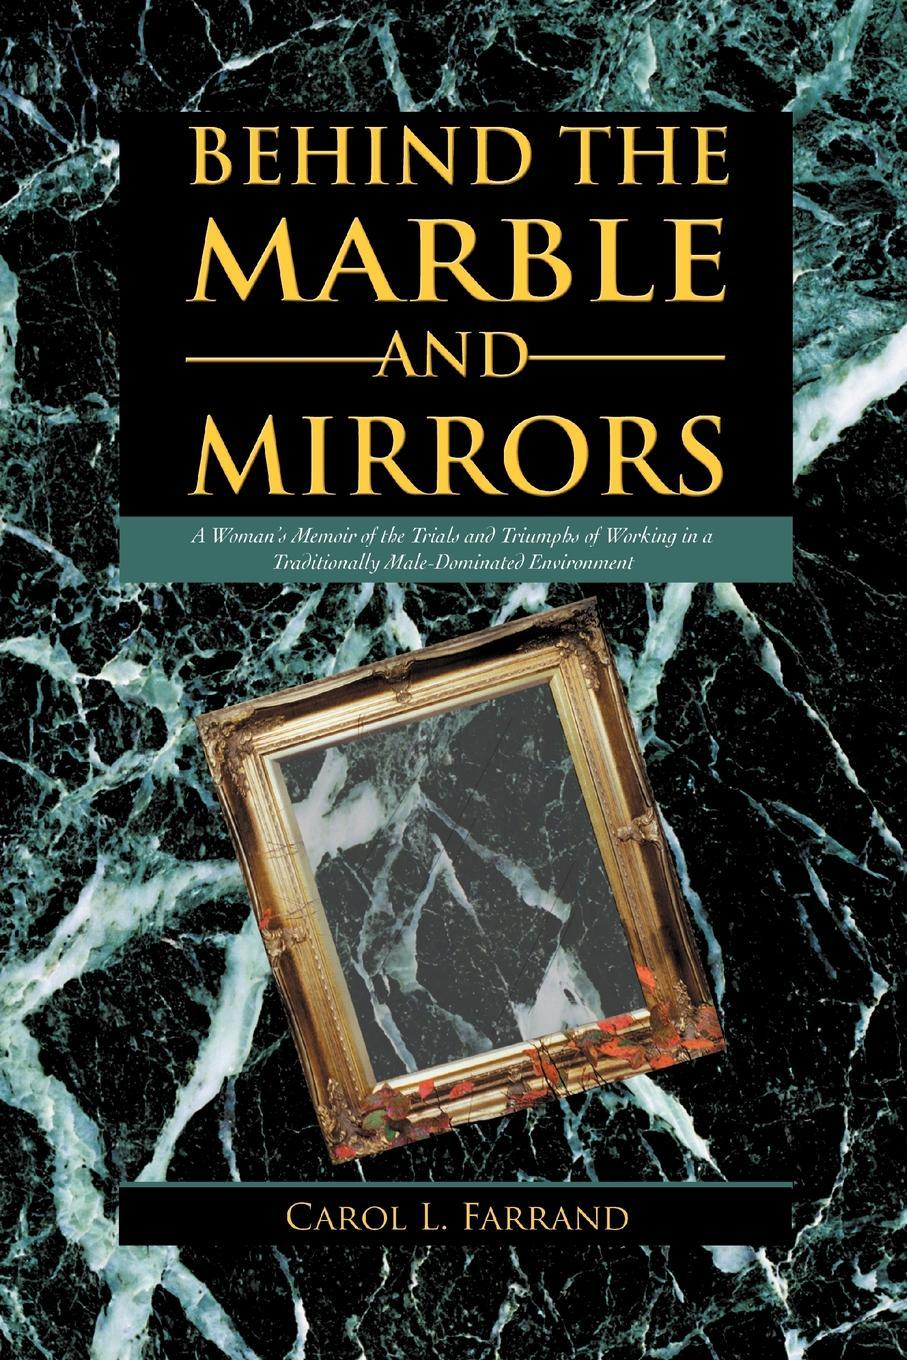 Behind the Marble and Mirrors: A Woman's Memoir of the Trials and Triumphs of Working in a Traditionally Male-Dominated Environment EB9781469715179